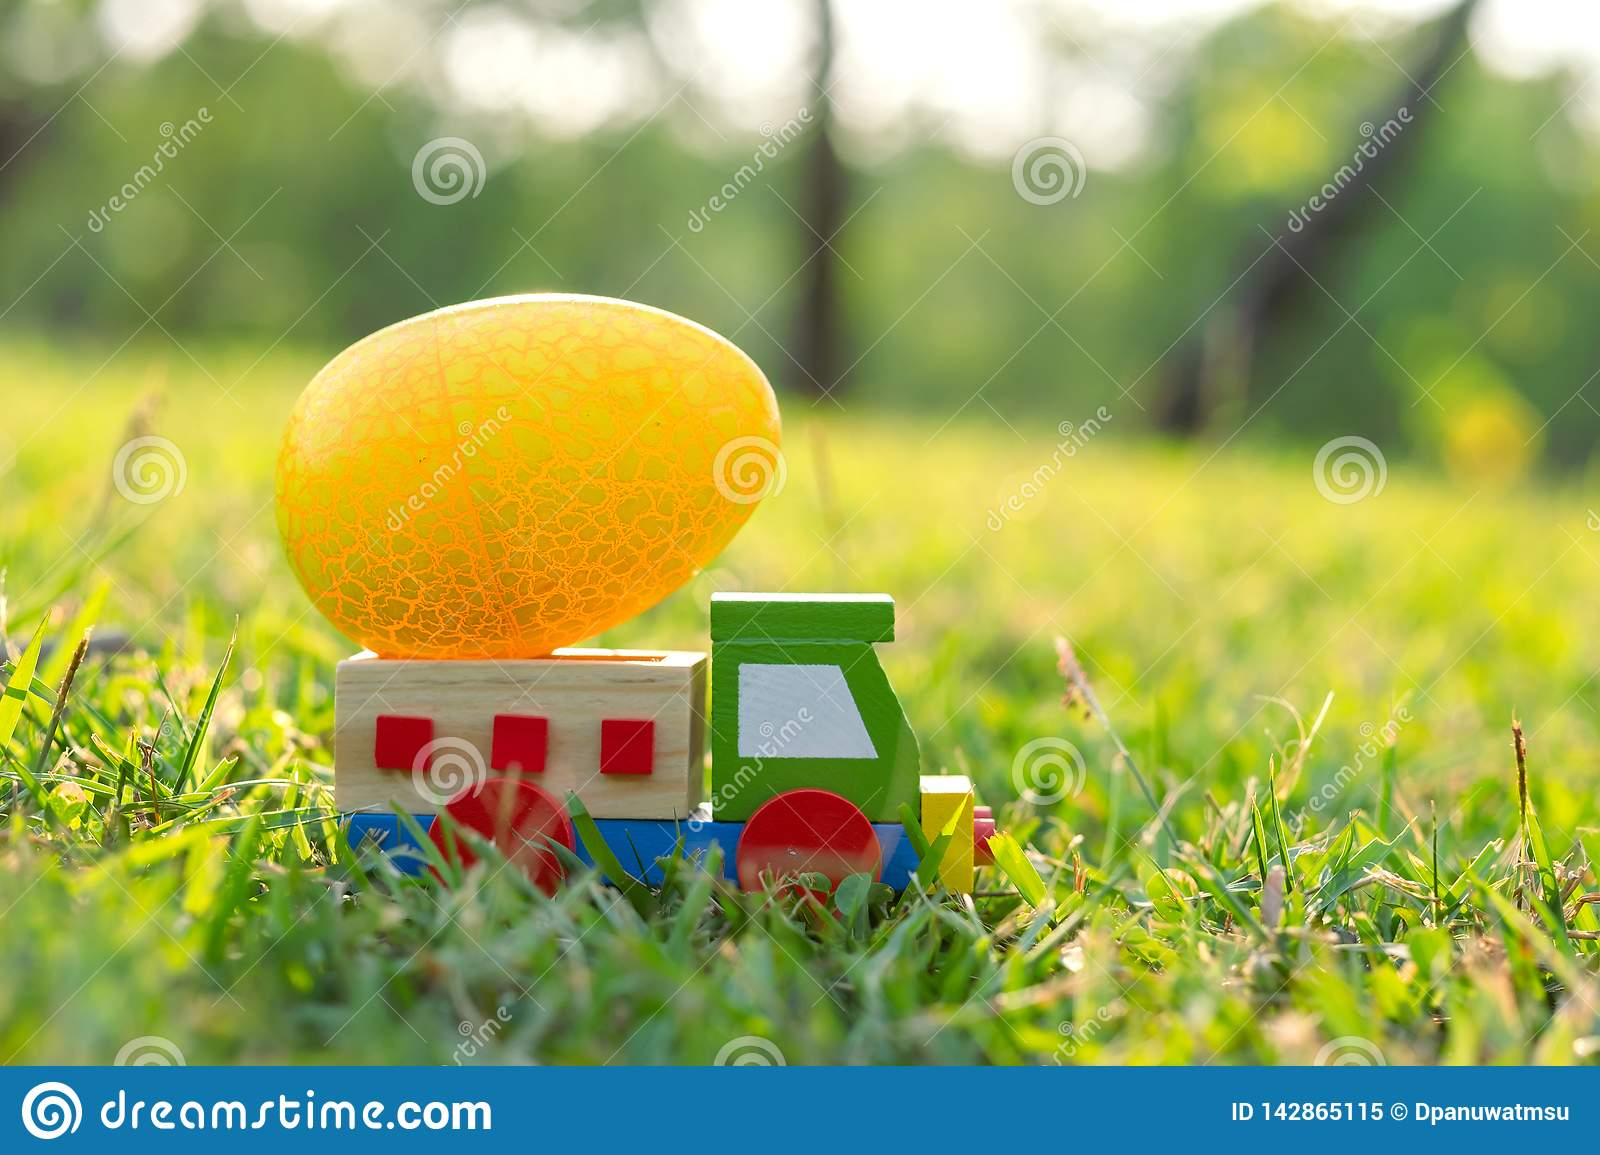 Happy Easter with  Eggs cute bunny and car in the morning, Funny decoration in grass spring season